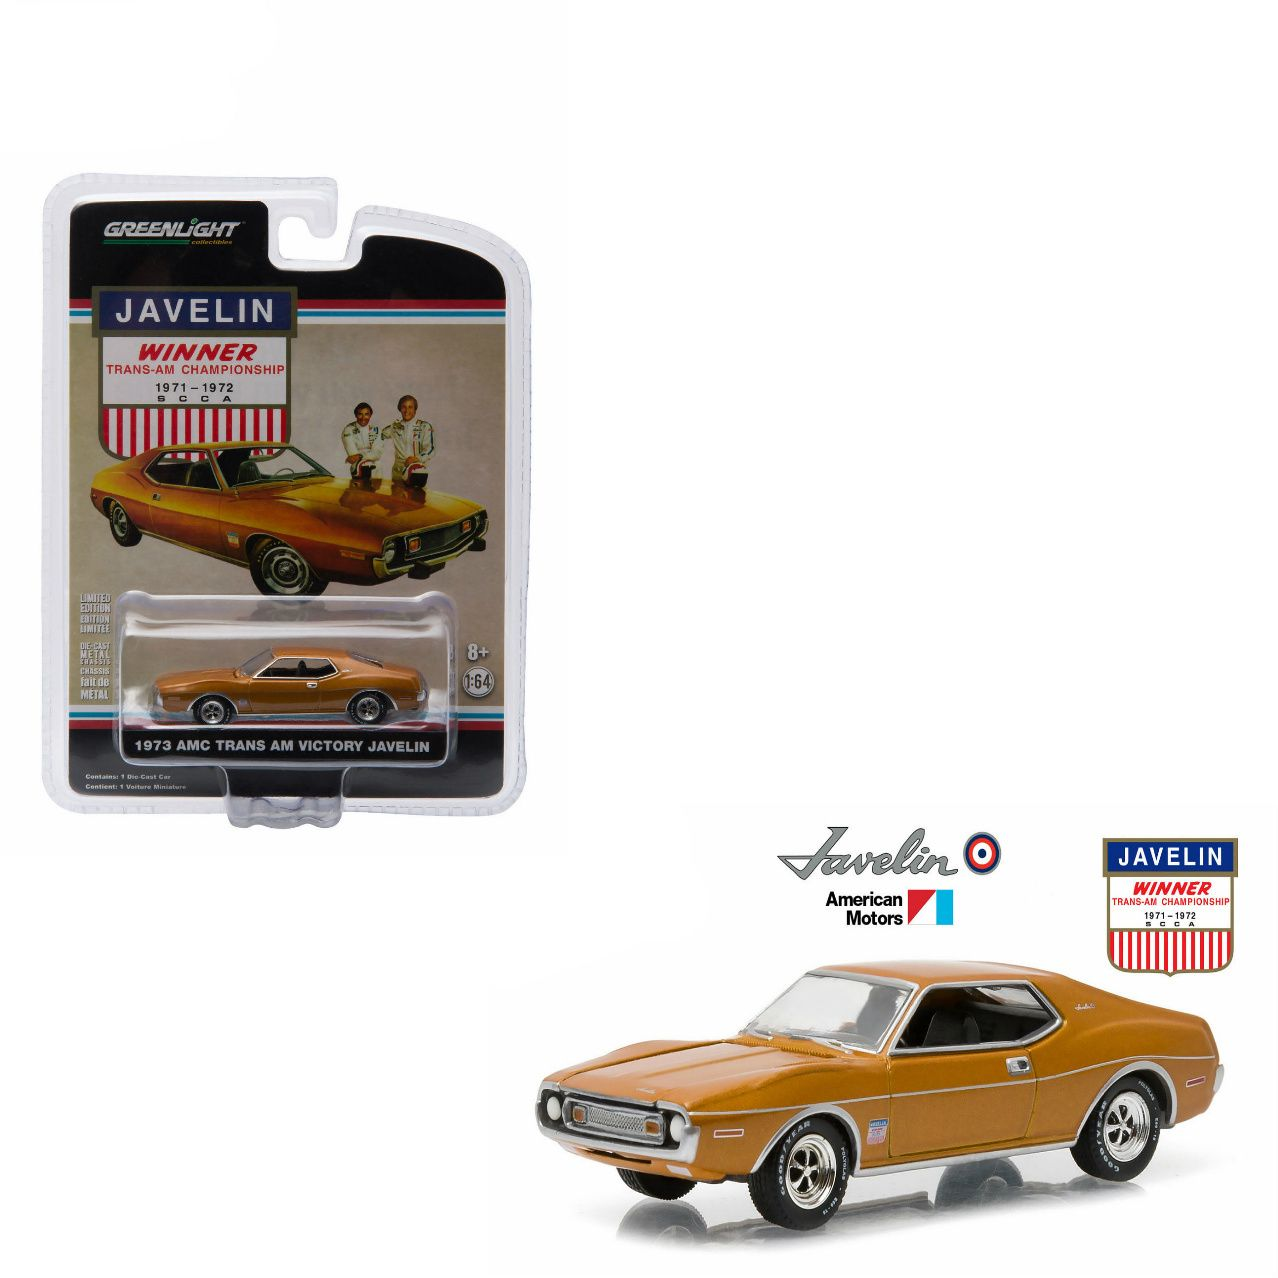 Greenlight 1/64 Scale Hobby Exclusive